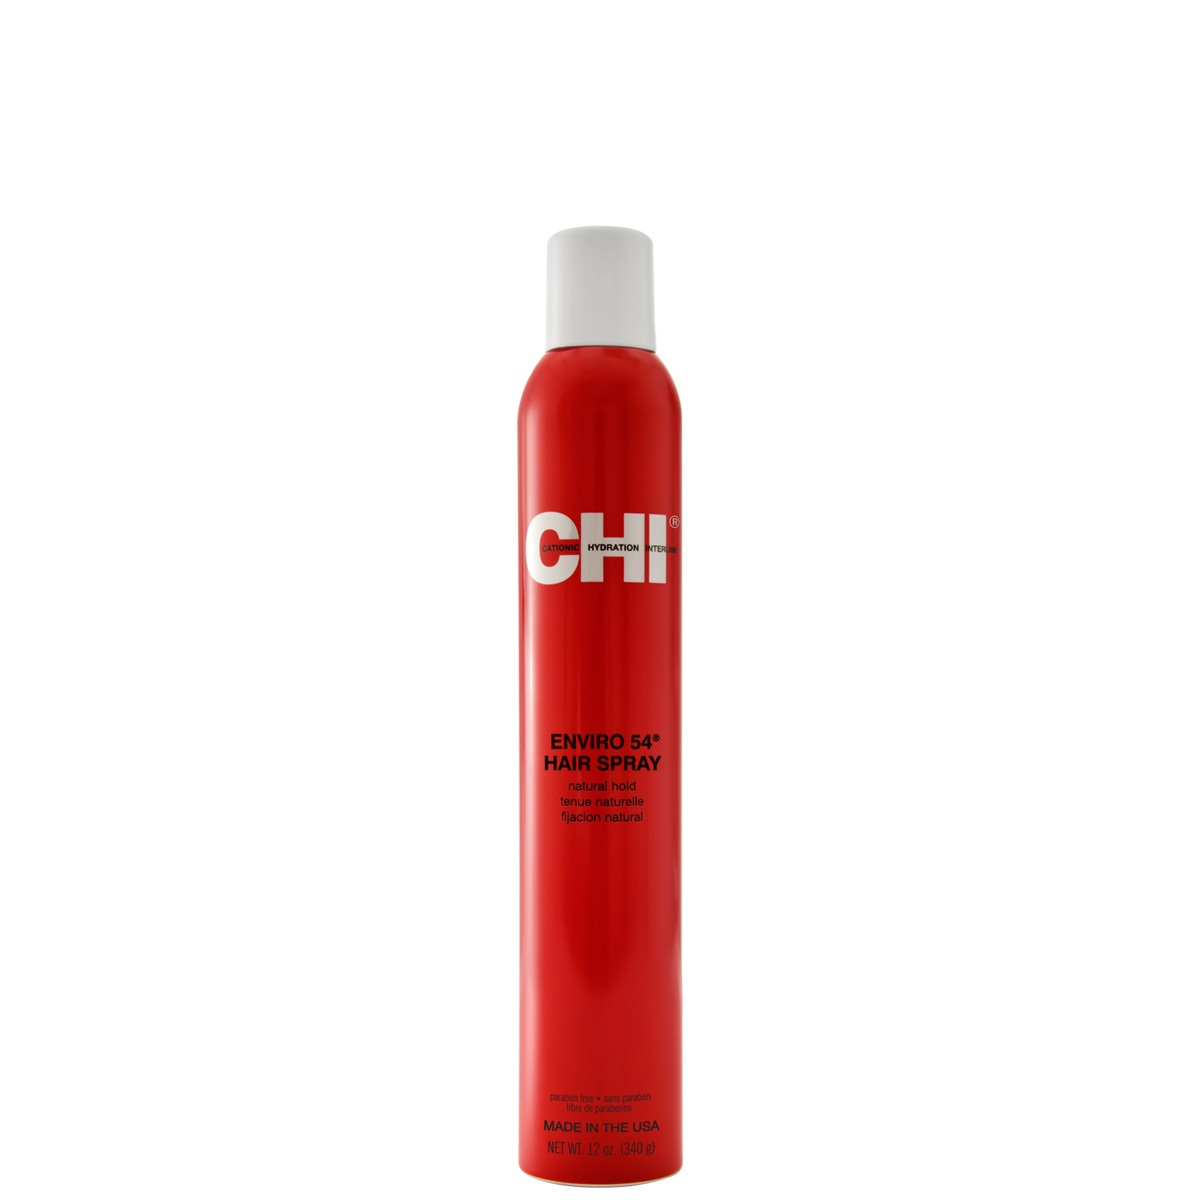 CHI Enviro 54 Hairspray – Natural Hold